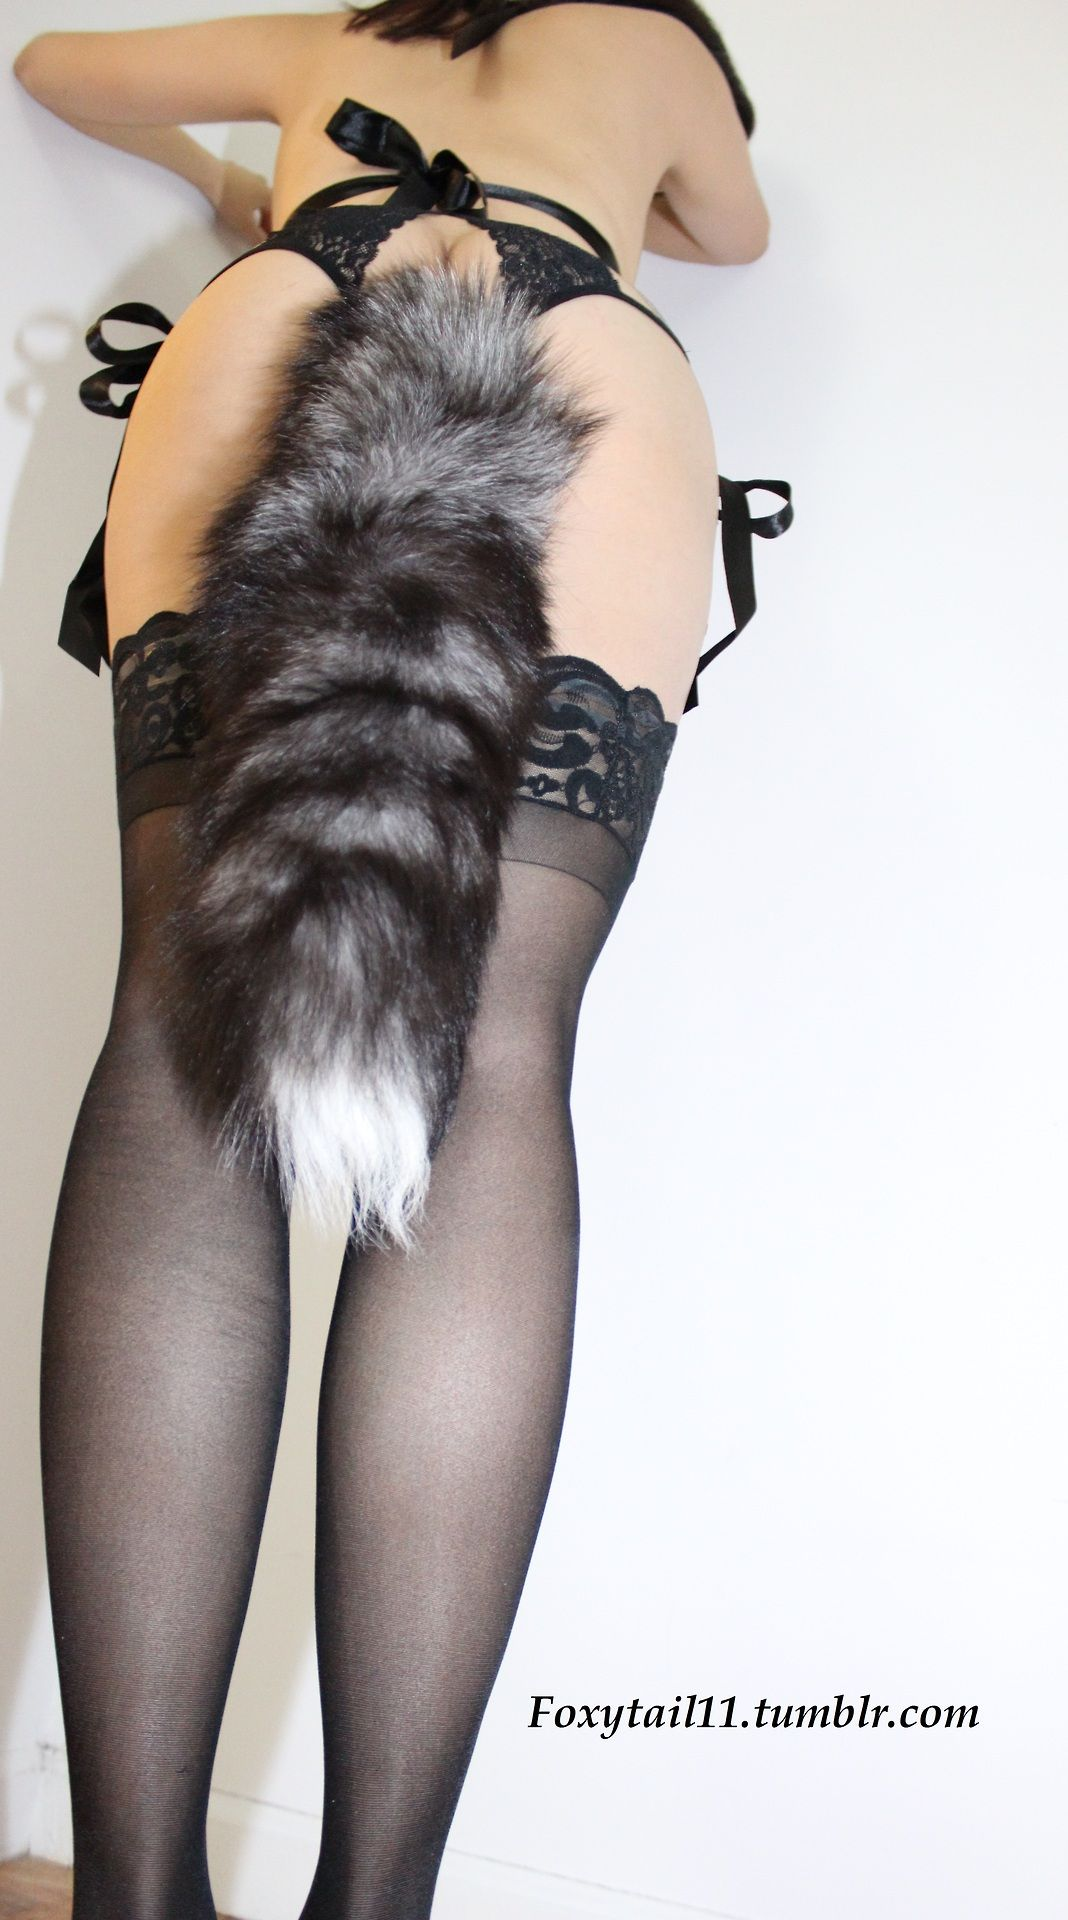 buttplug sexy Furry